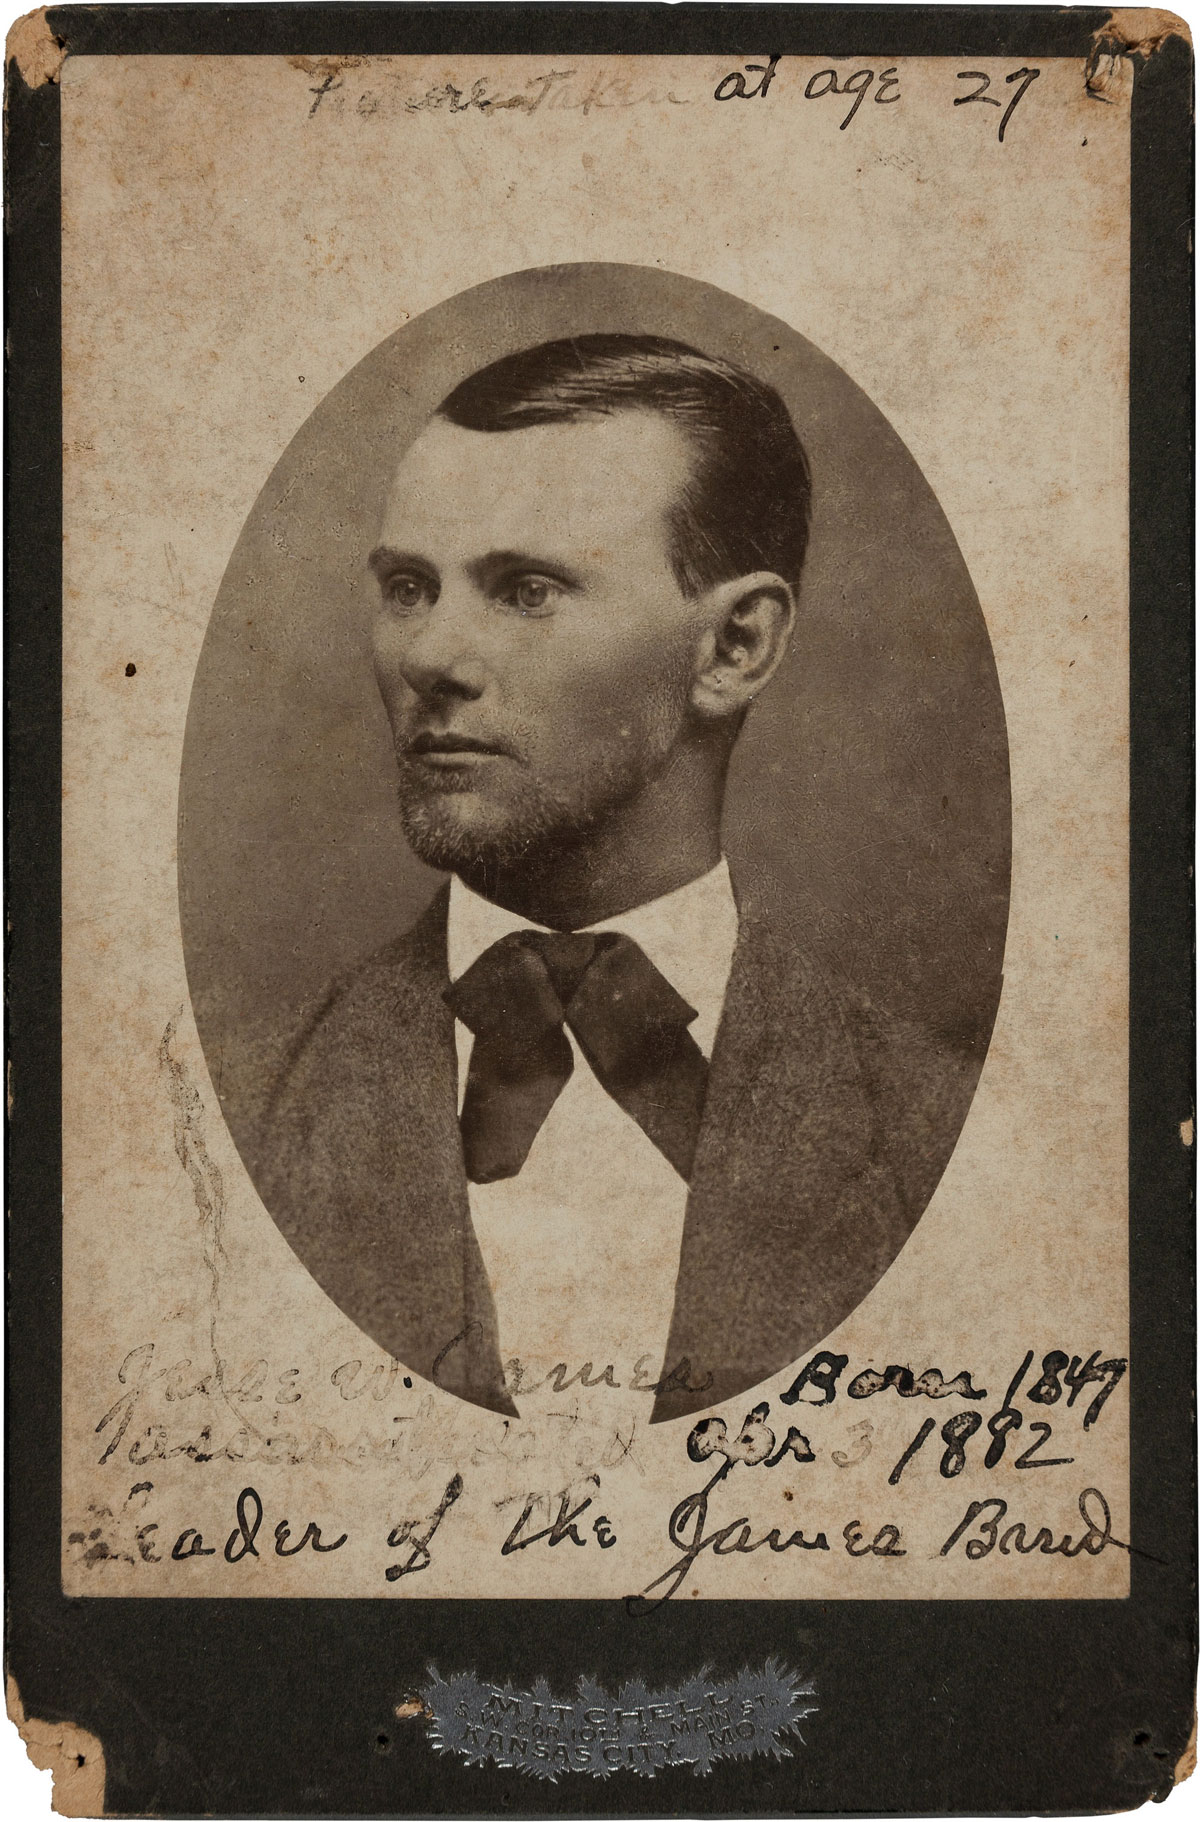 Jesse James at 27 years old